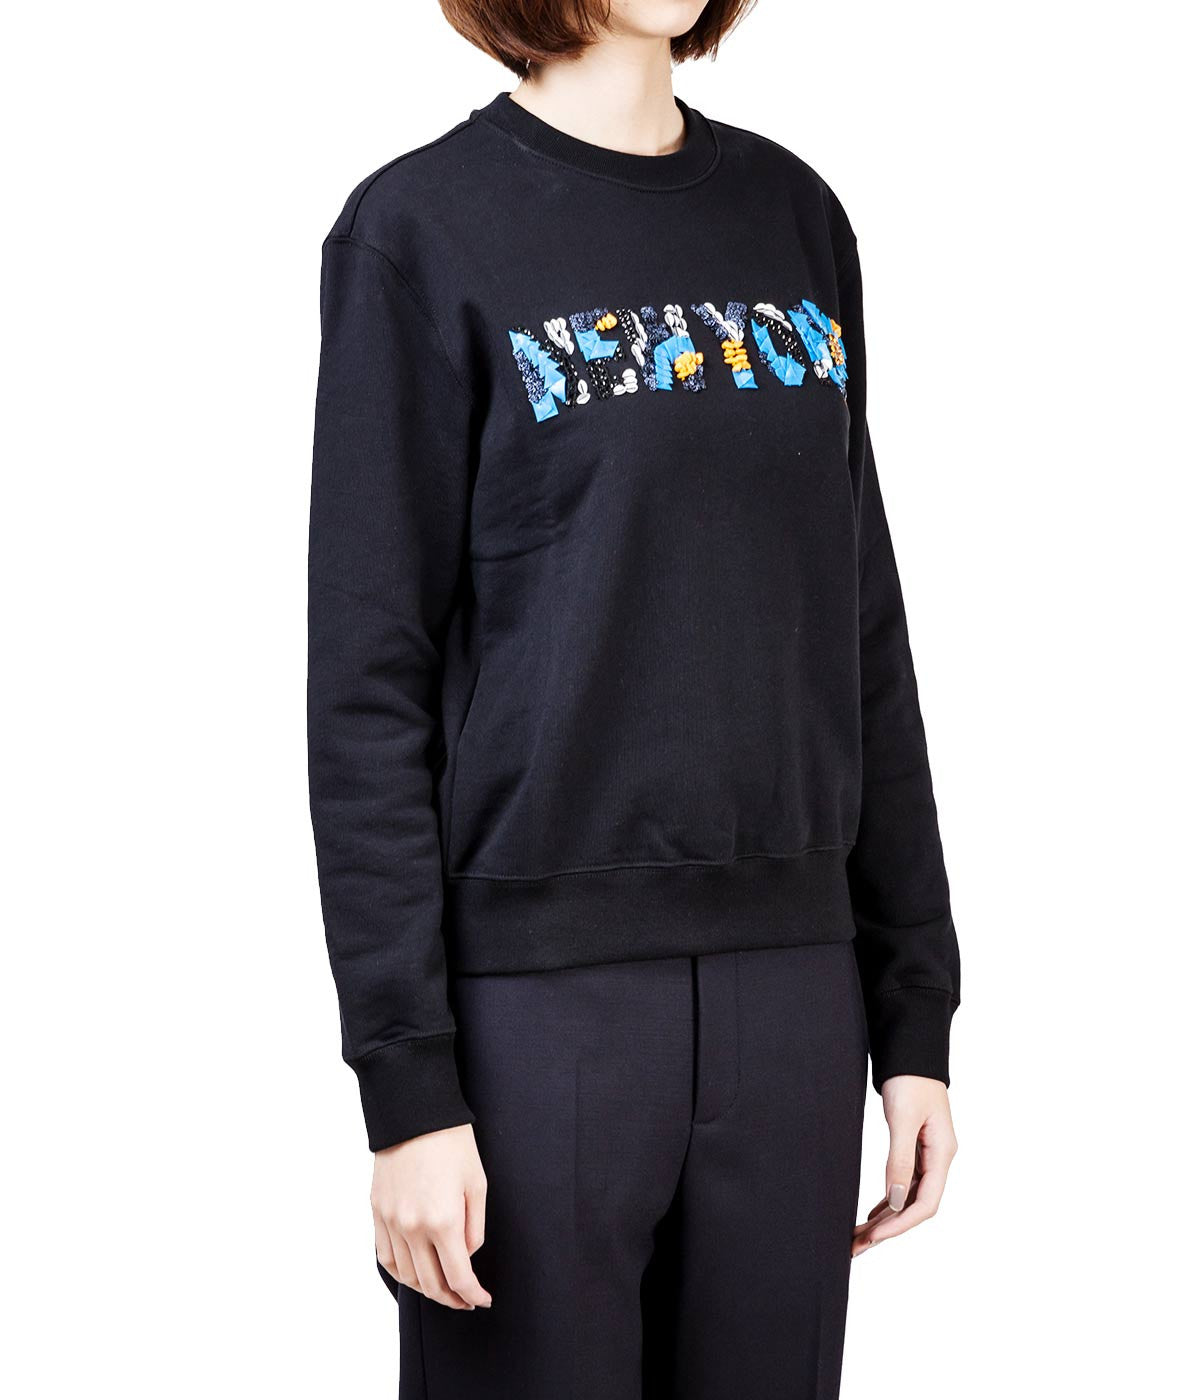 Embellished New York Sweatshirt